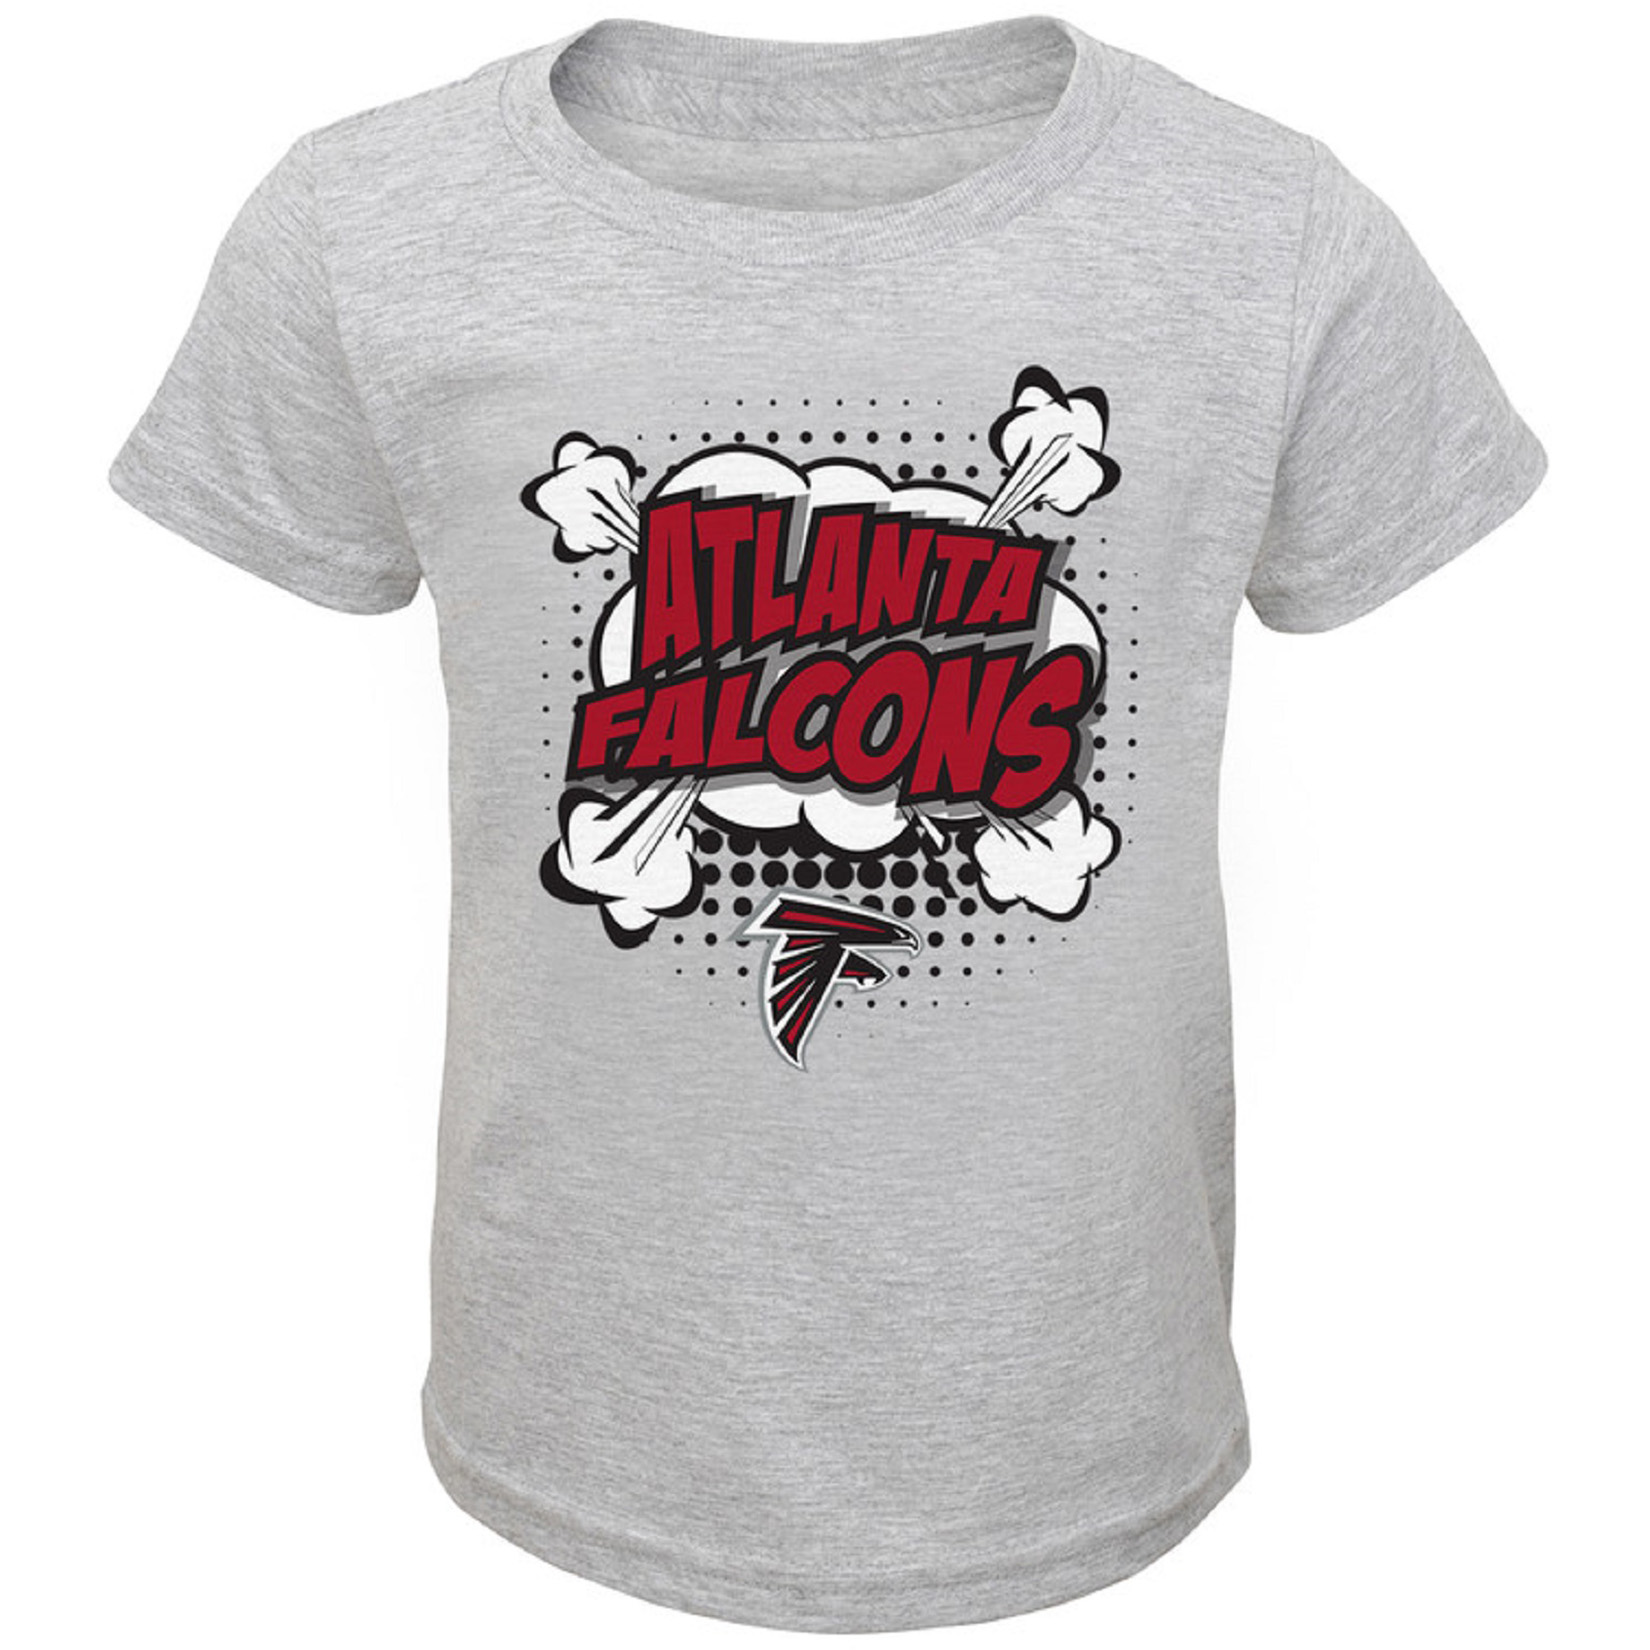 Infant Heathered Gray Atlanta Falcons Crew Neck T-Shirt